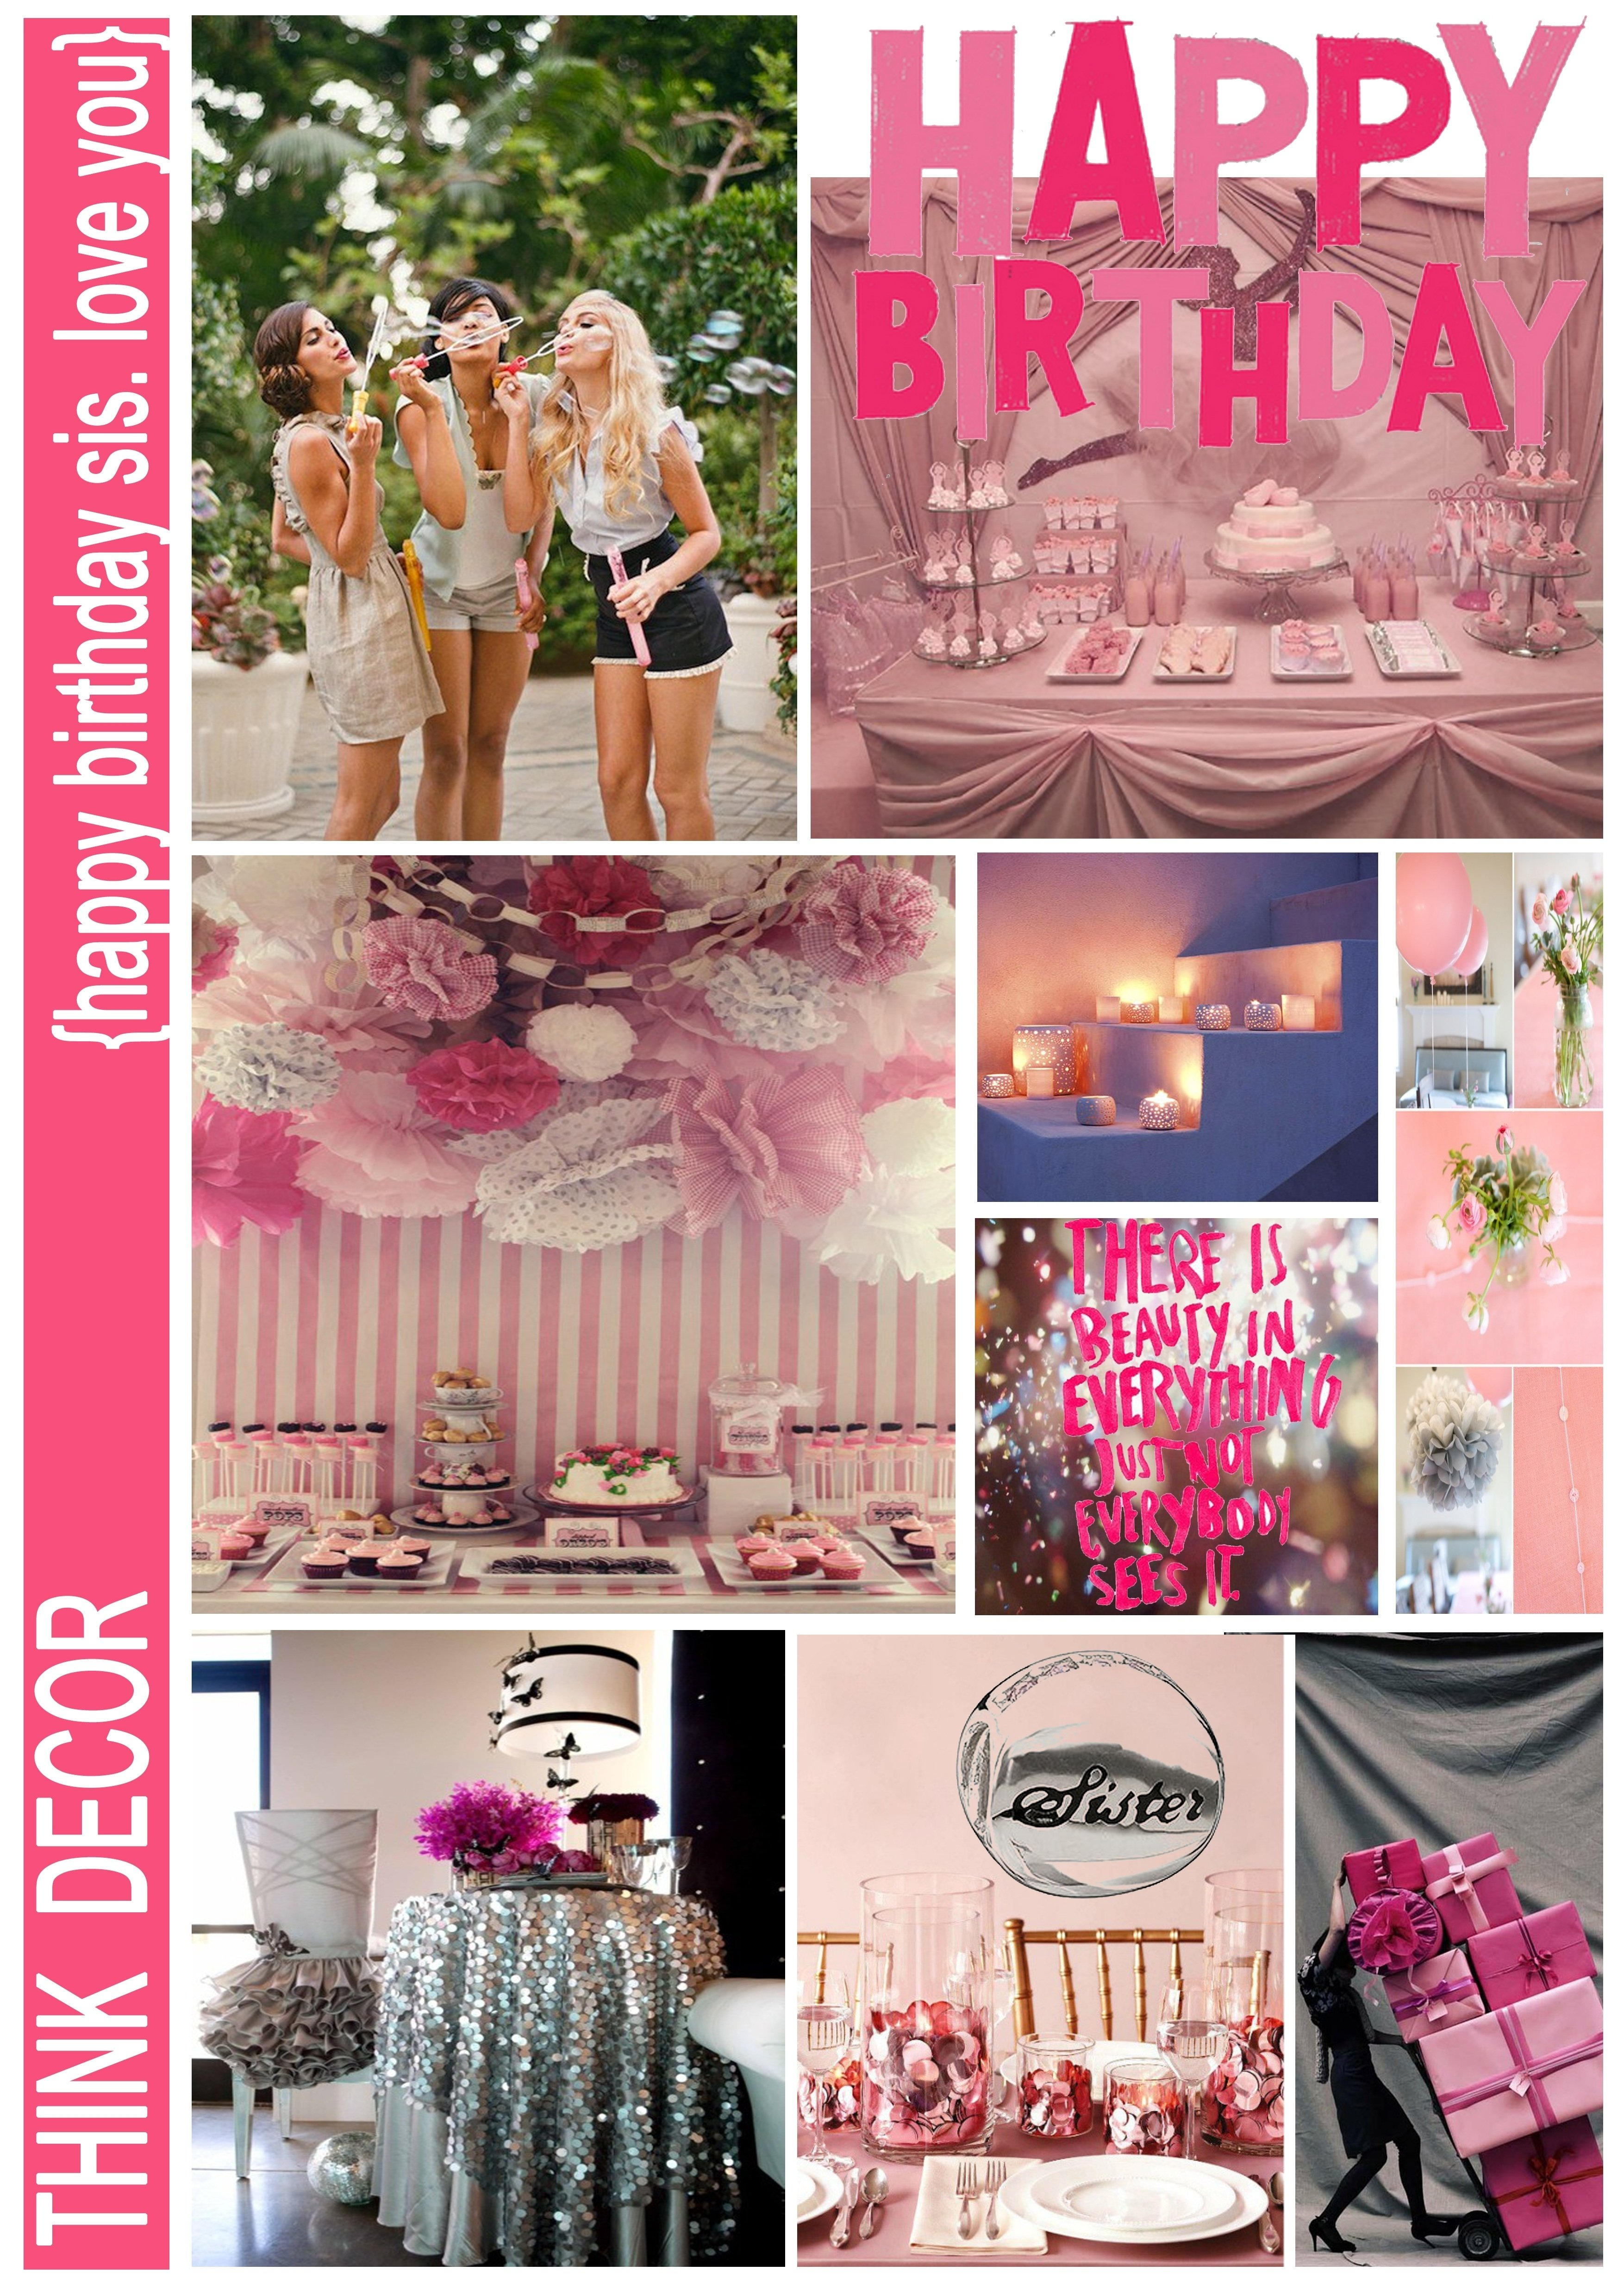 10 Stylish 21St Birthday Party Ideas For Her Themes 21st Games Him